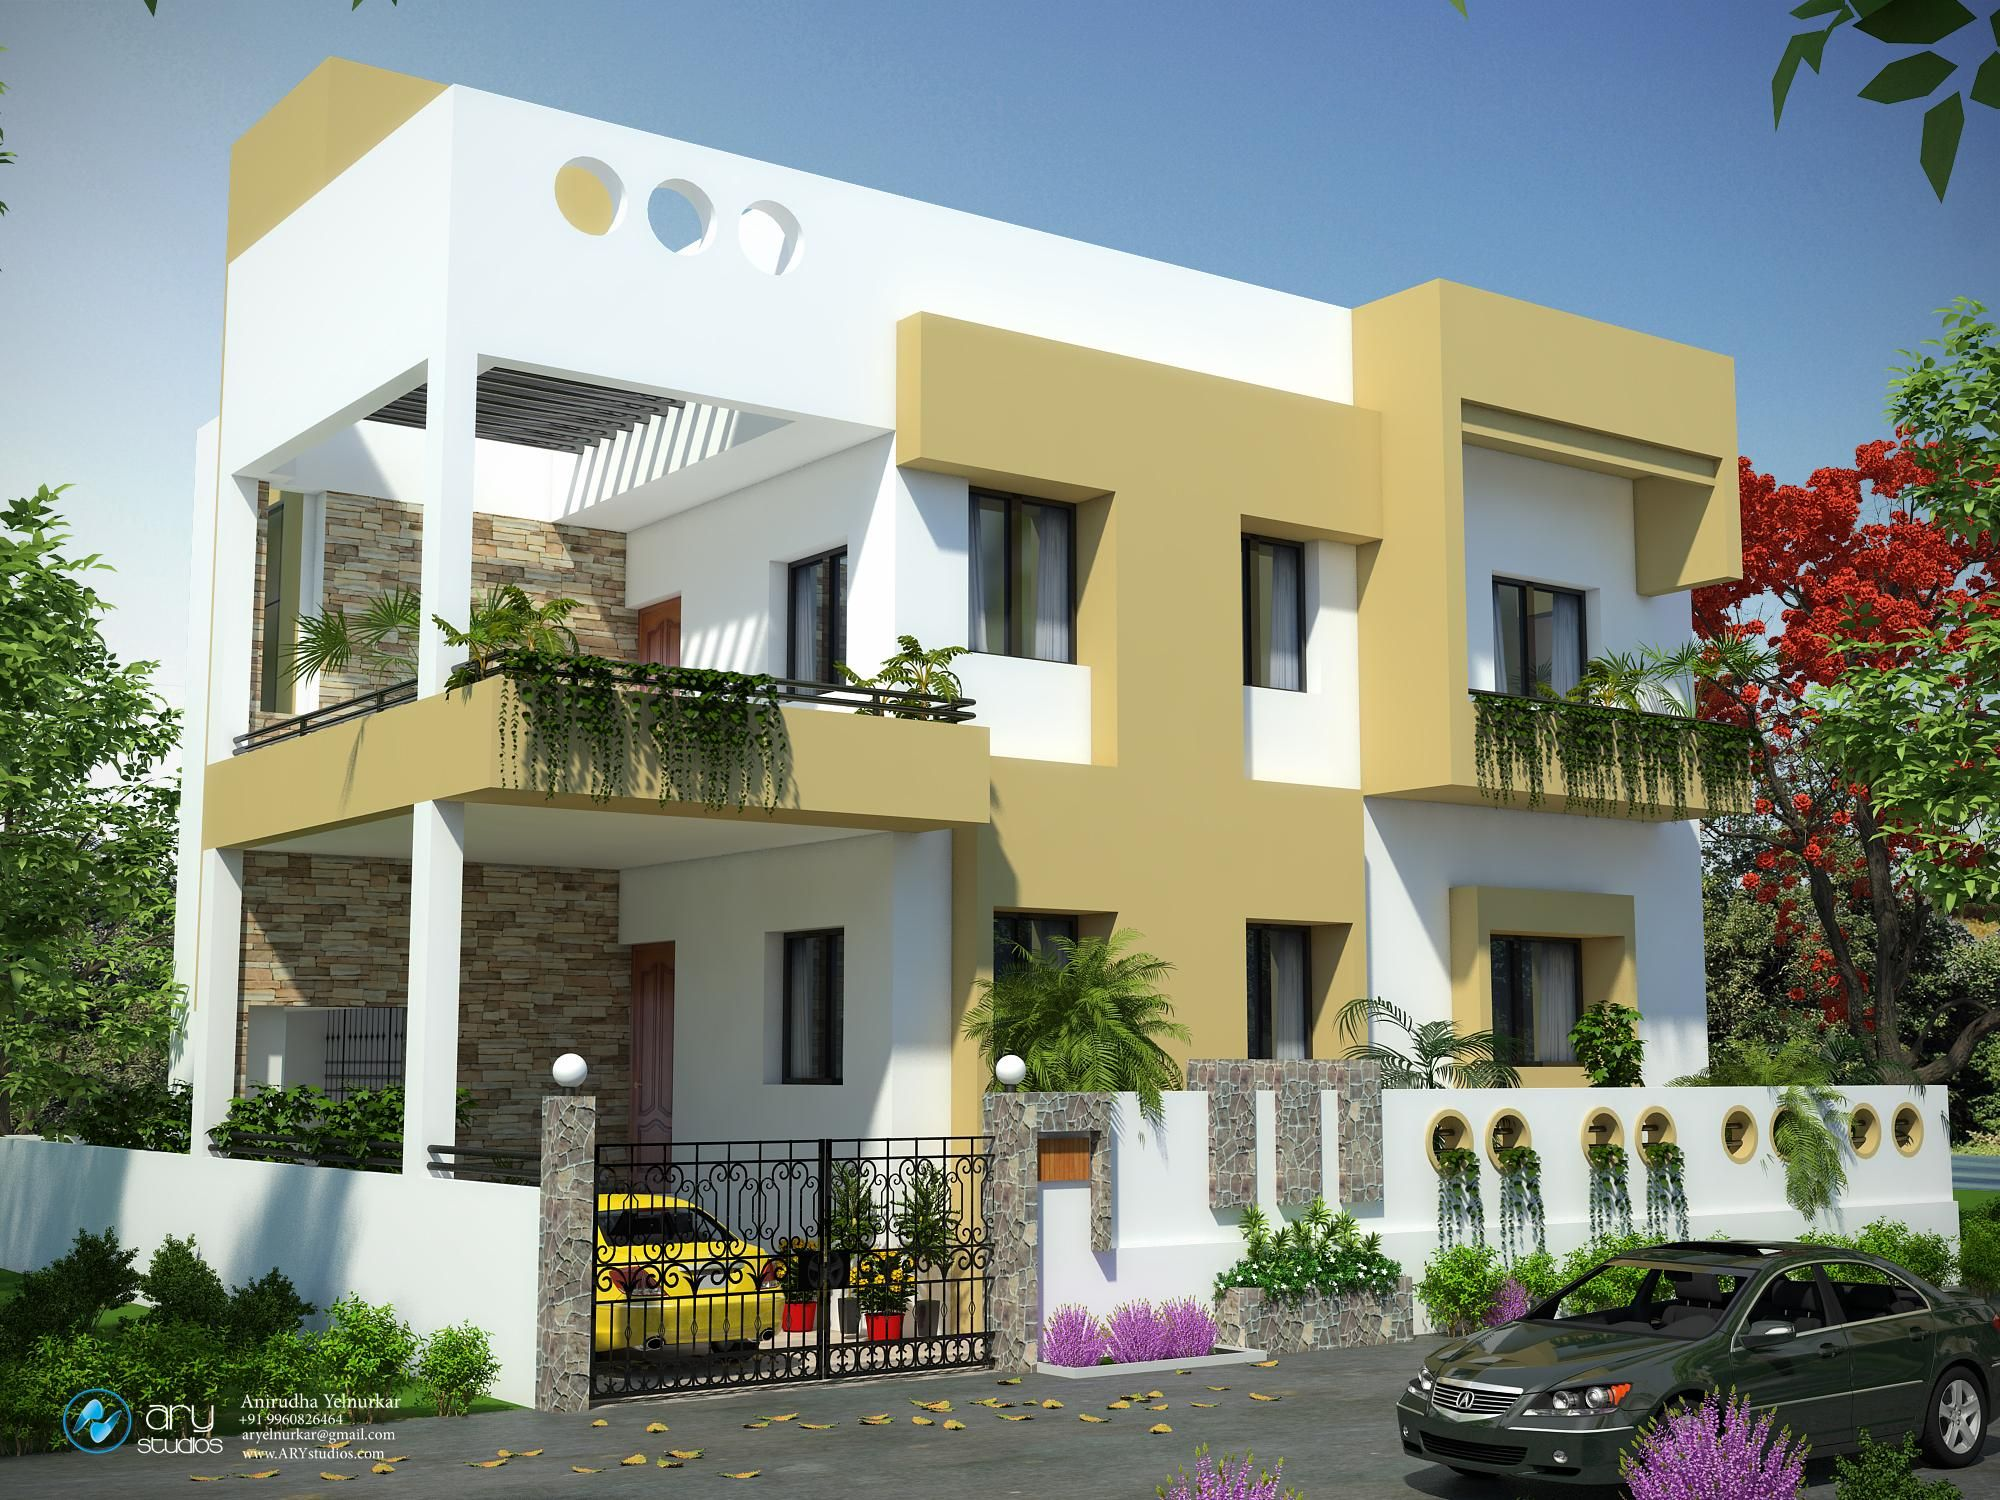 Apartment Building Exterior Paint Colors indian residential building designs apartment elev | interior